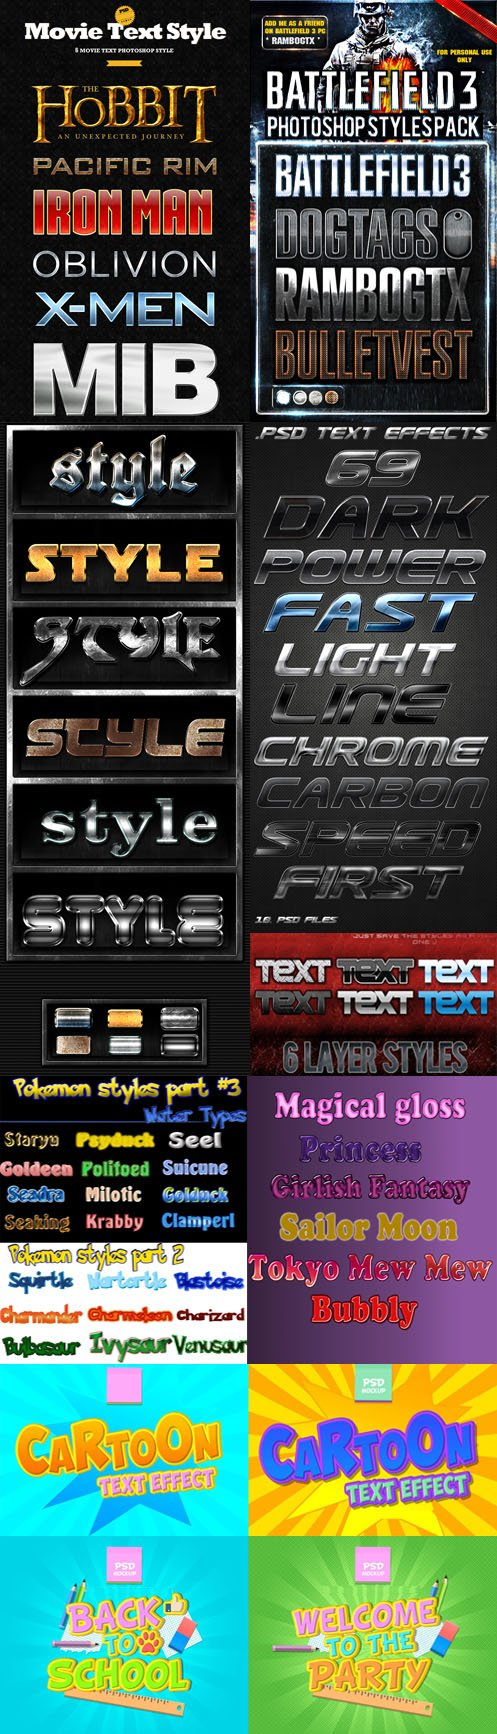 60 Wonderful Text Effects & Styles for Photoshop